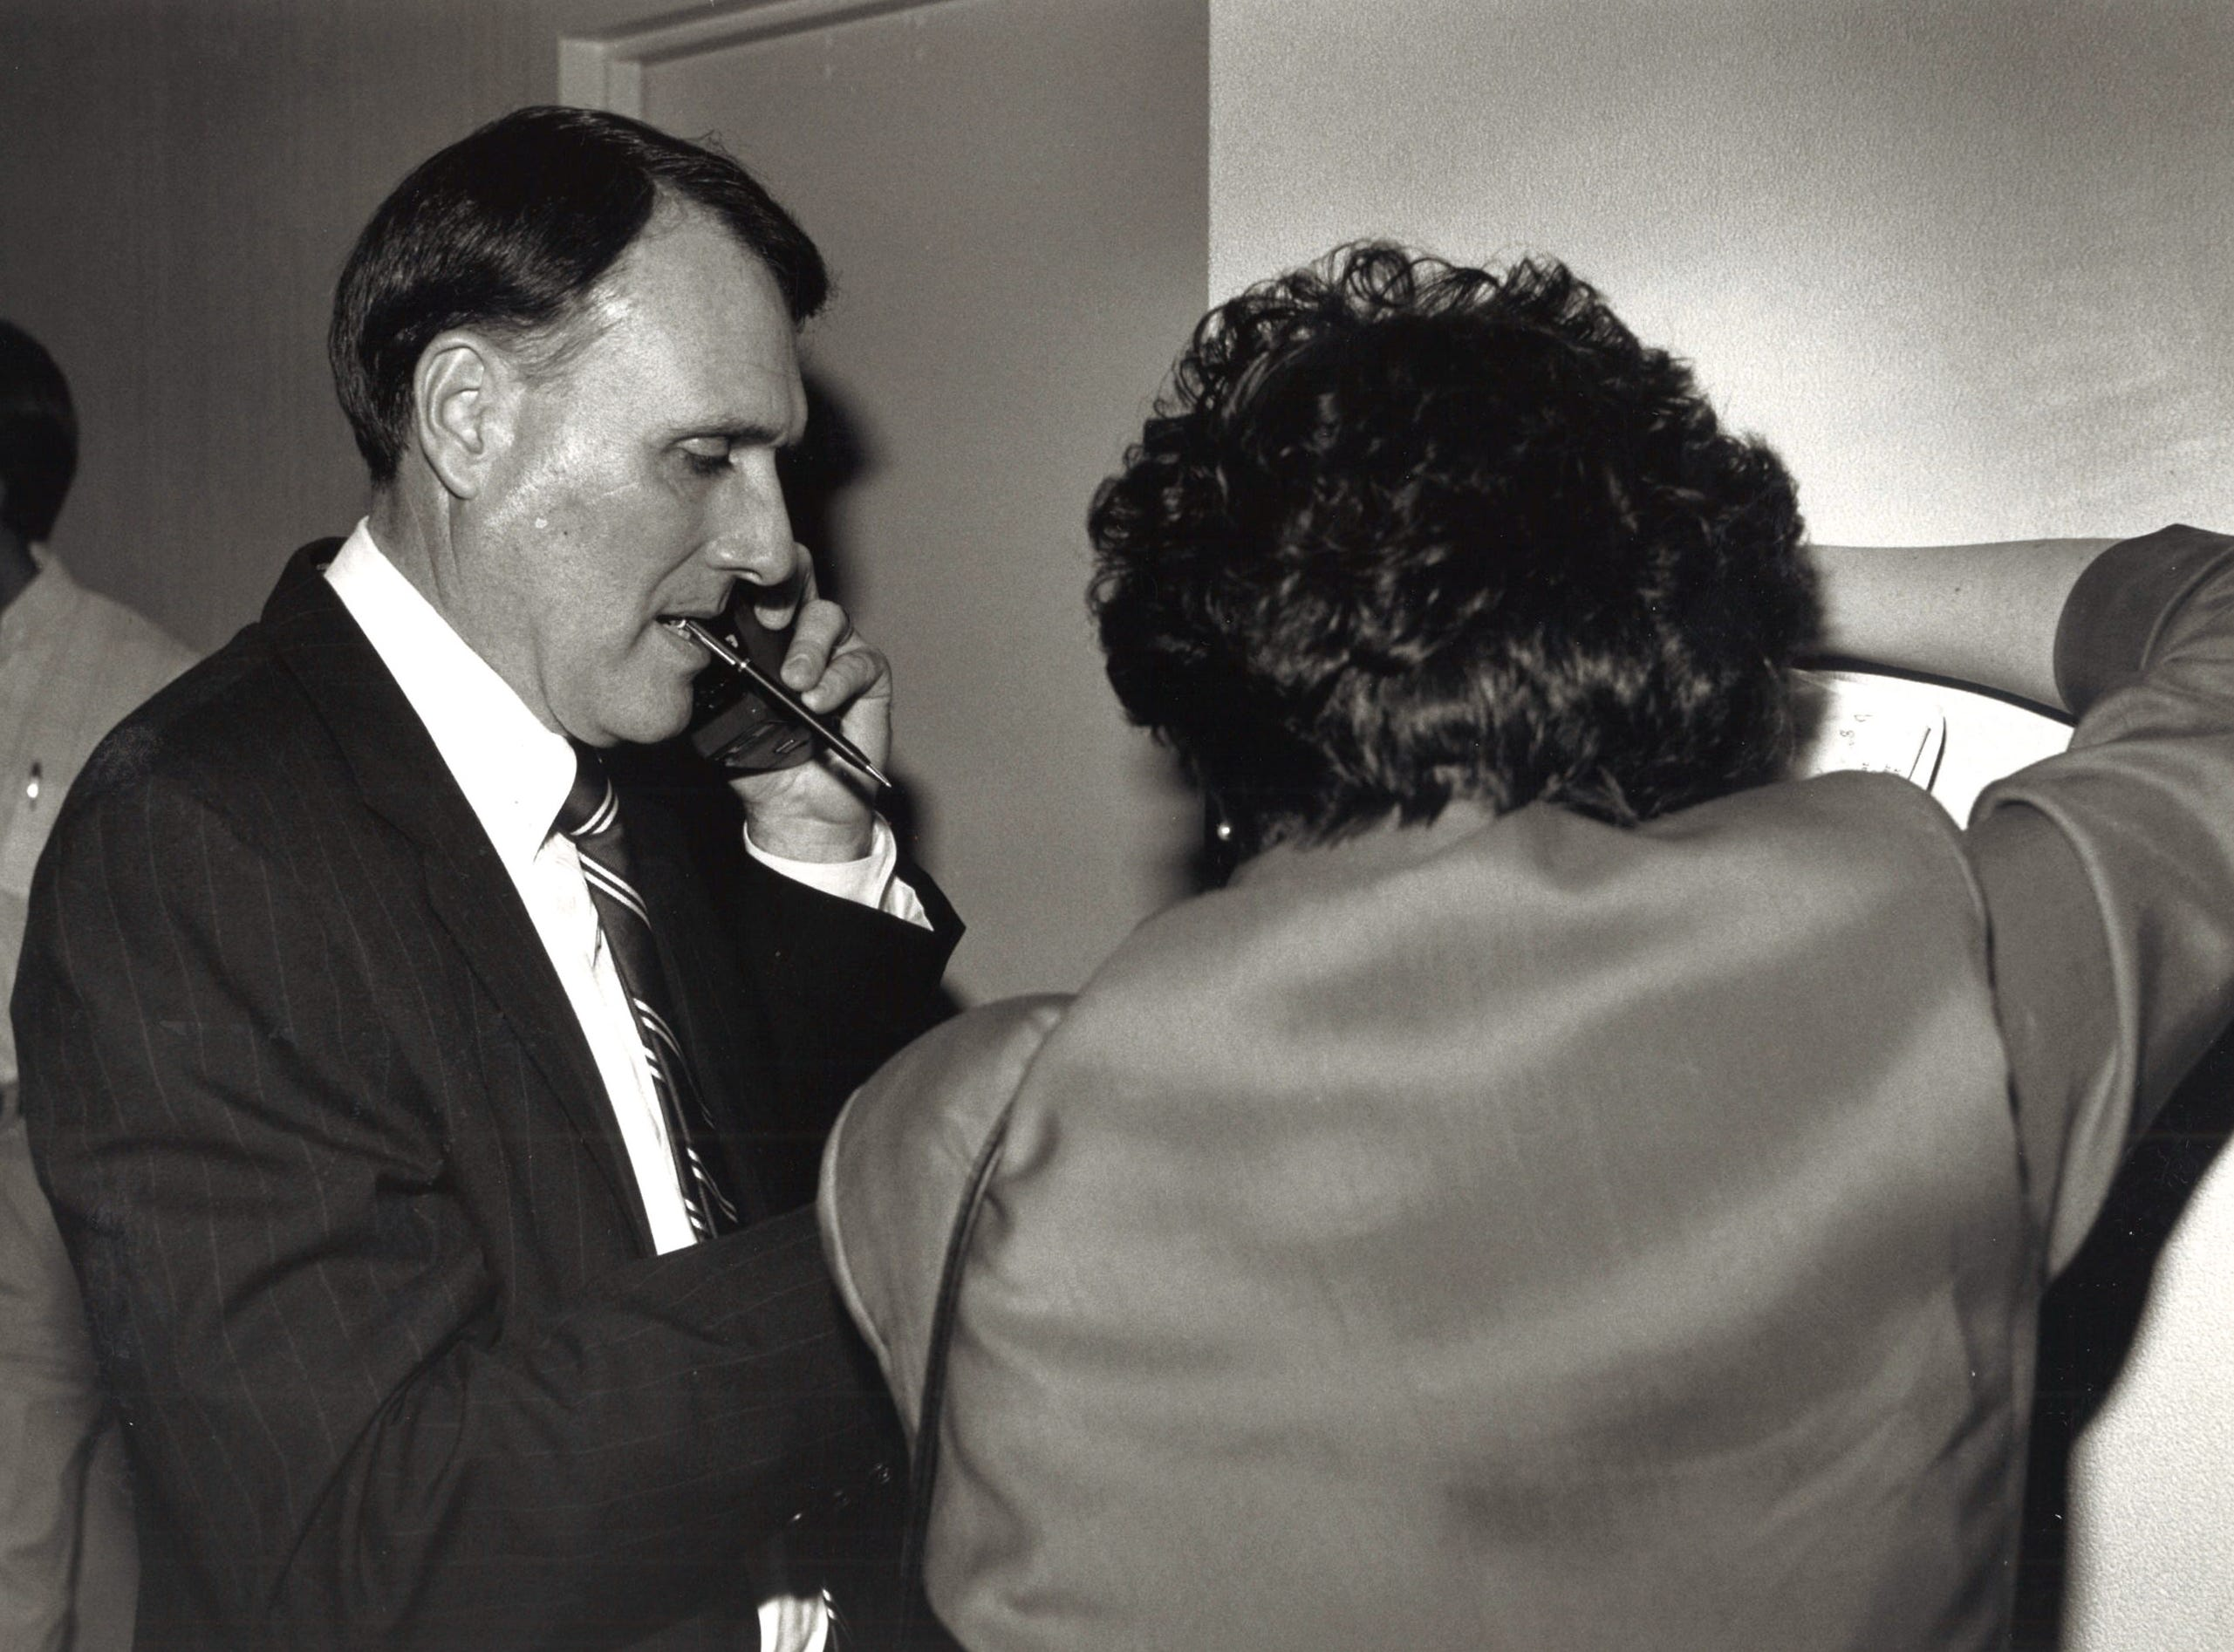 Jon Kyl holds his pen in his teeth while talking on a mobile phone. He was calling to get election results from other states, Nov. 7, 1990.